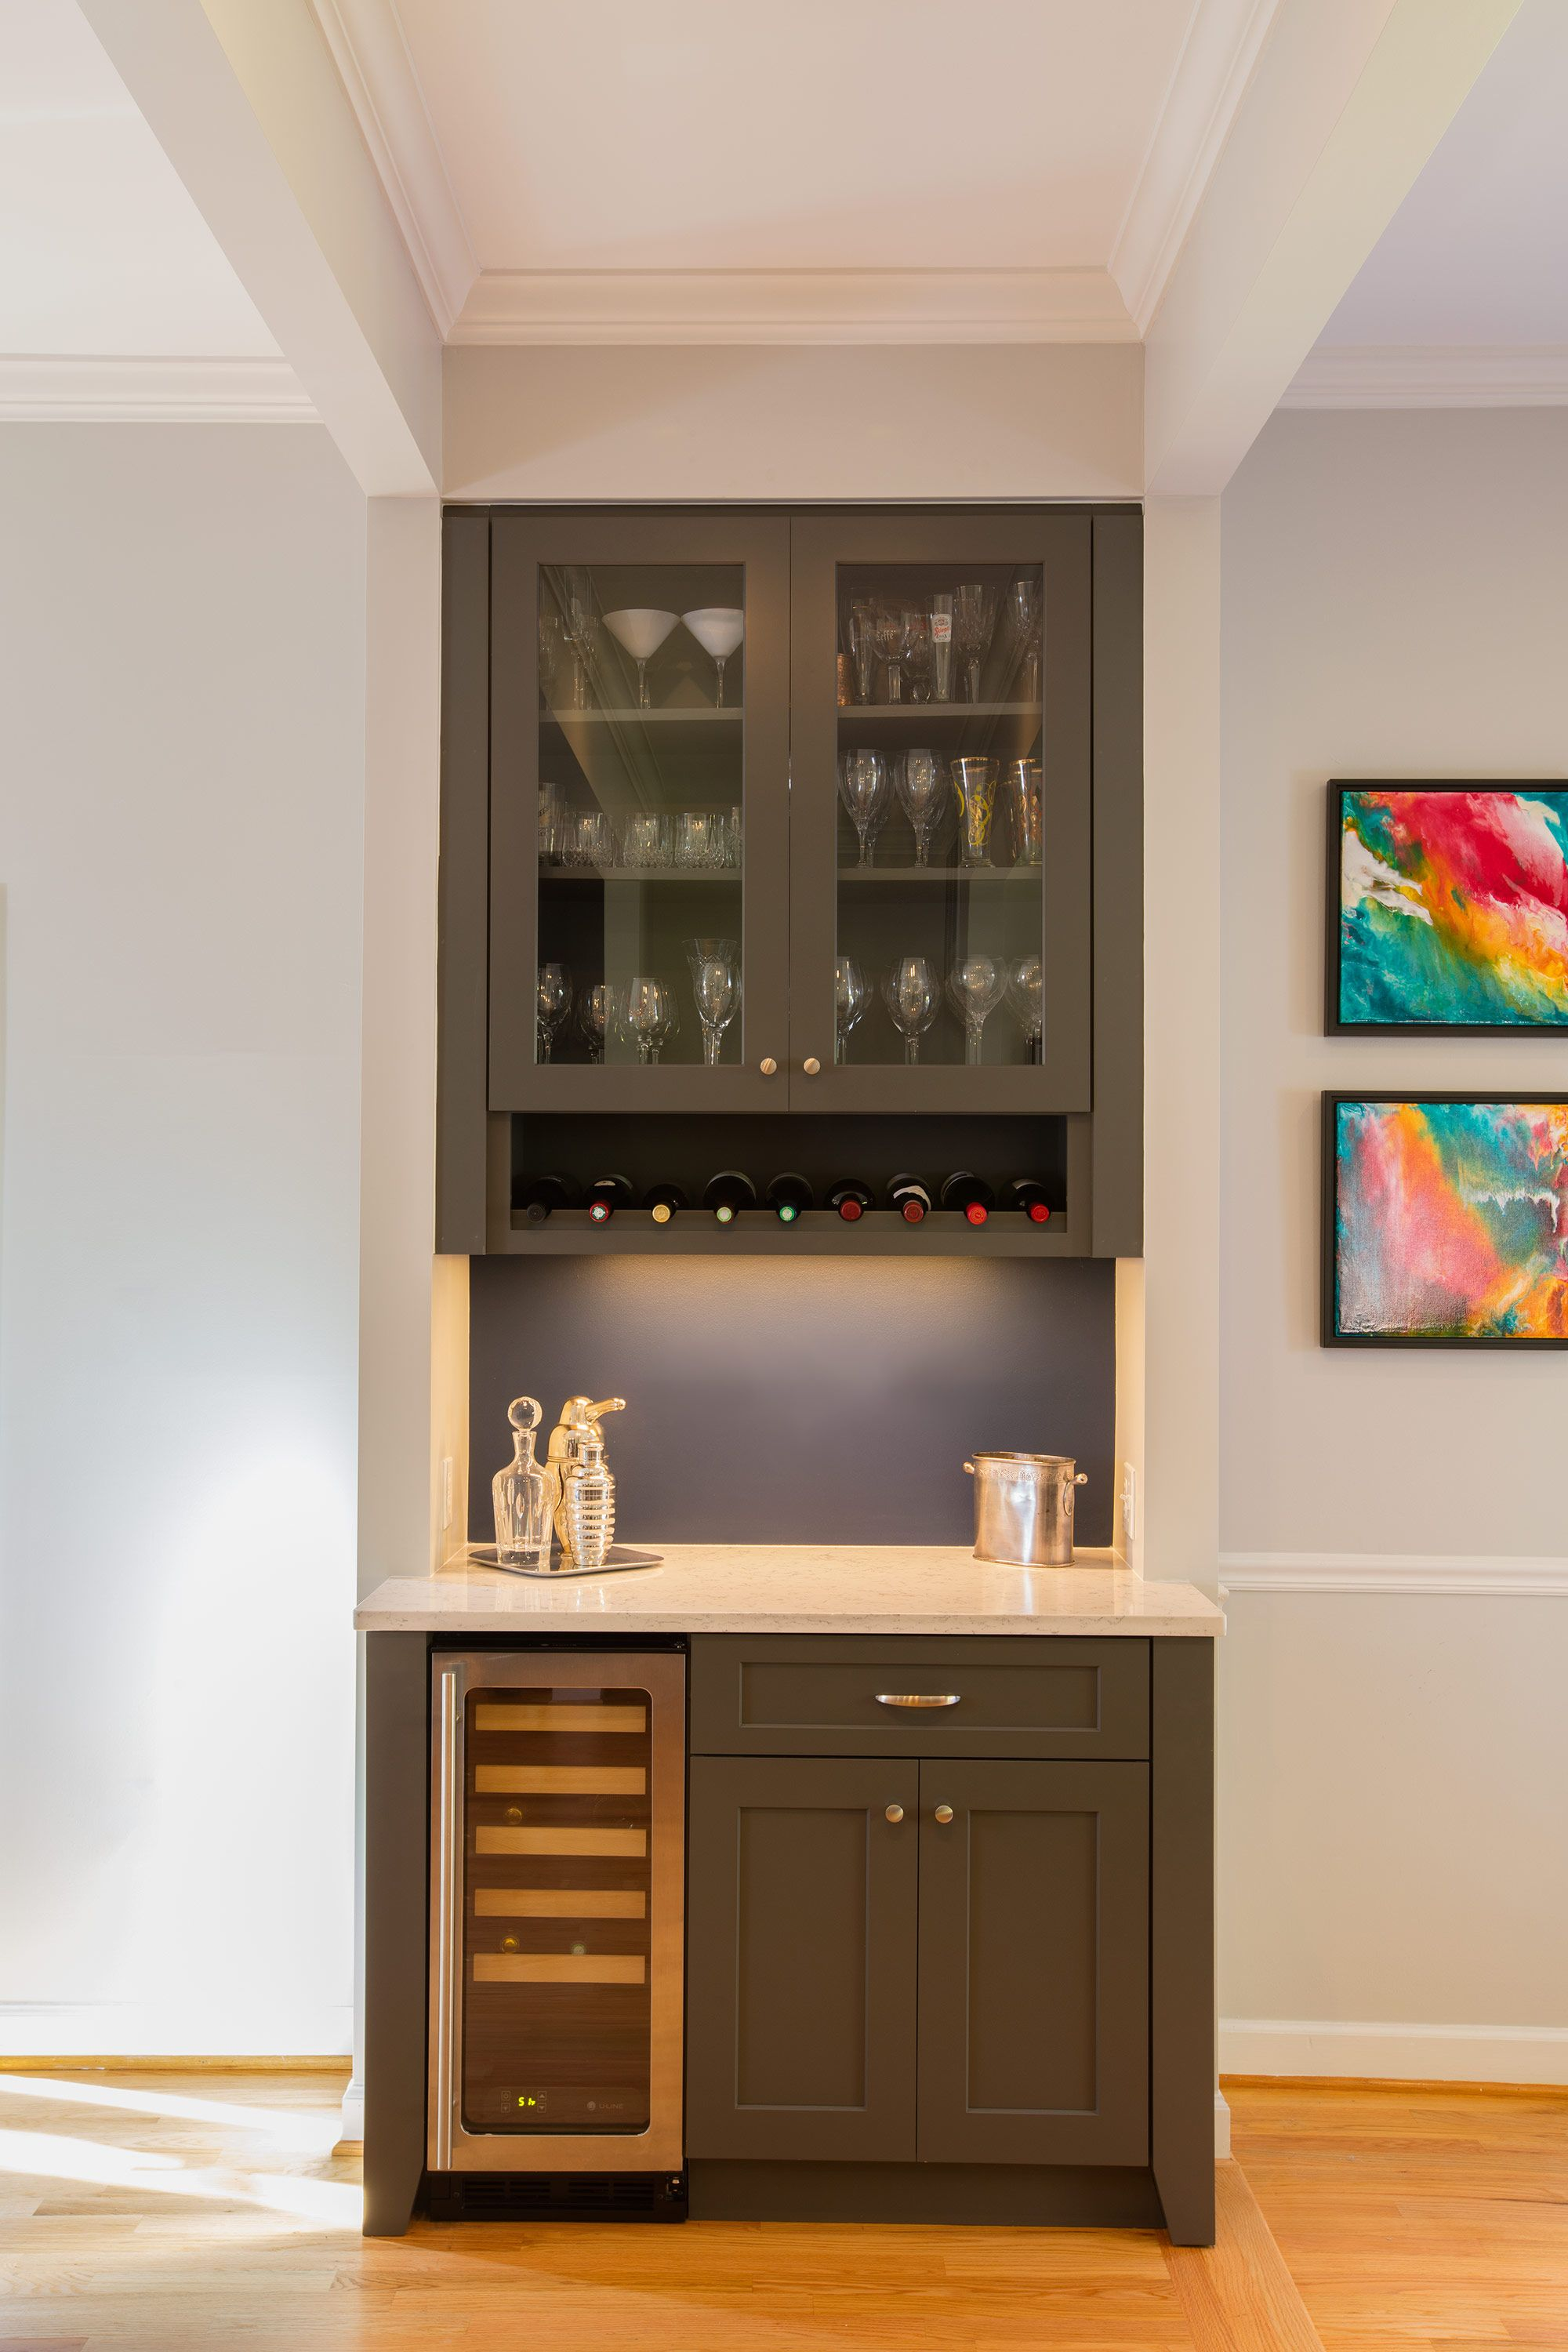 The new custom builtin dry bar with wine storage acts as